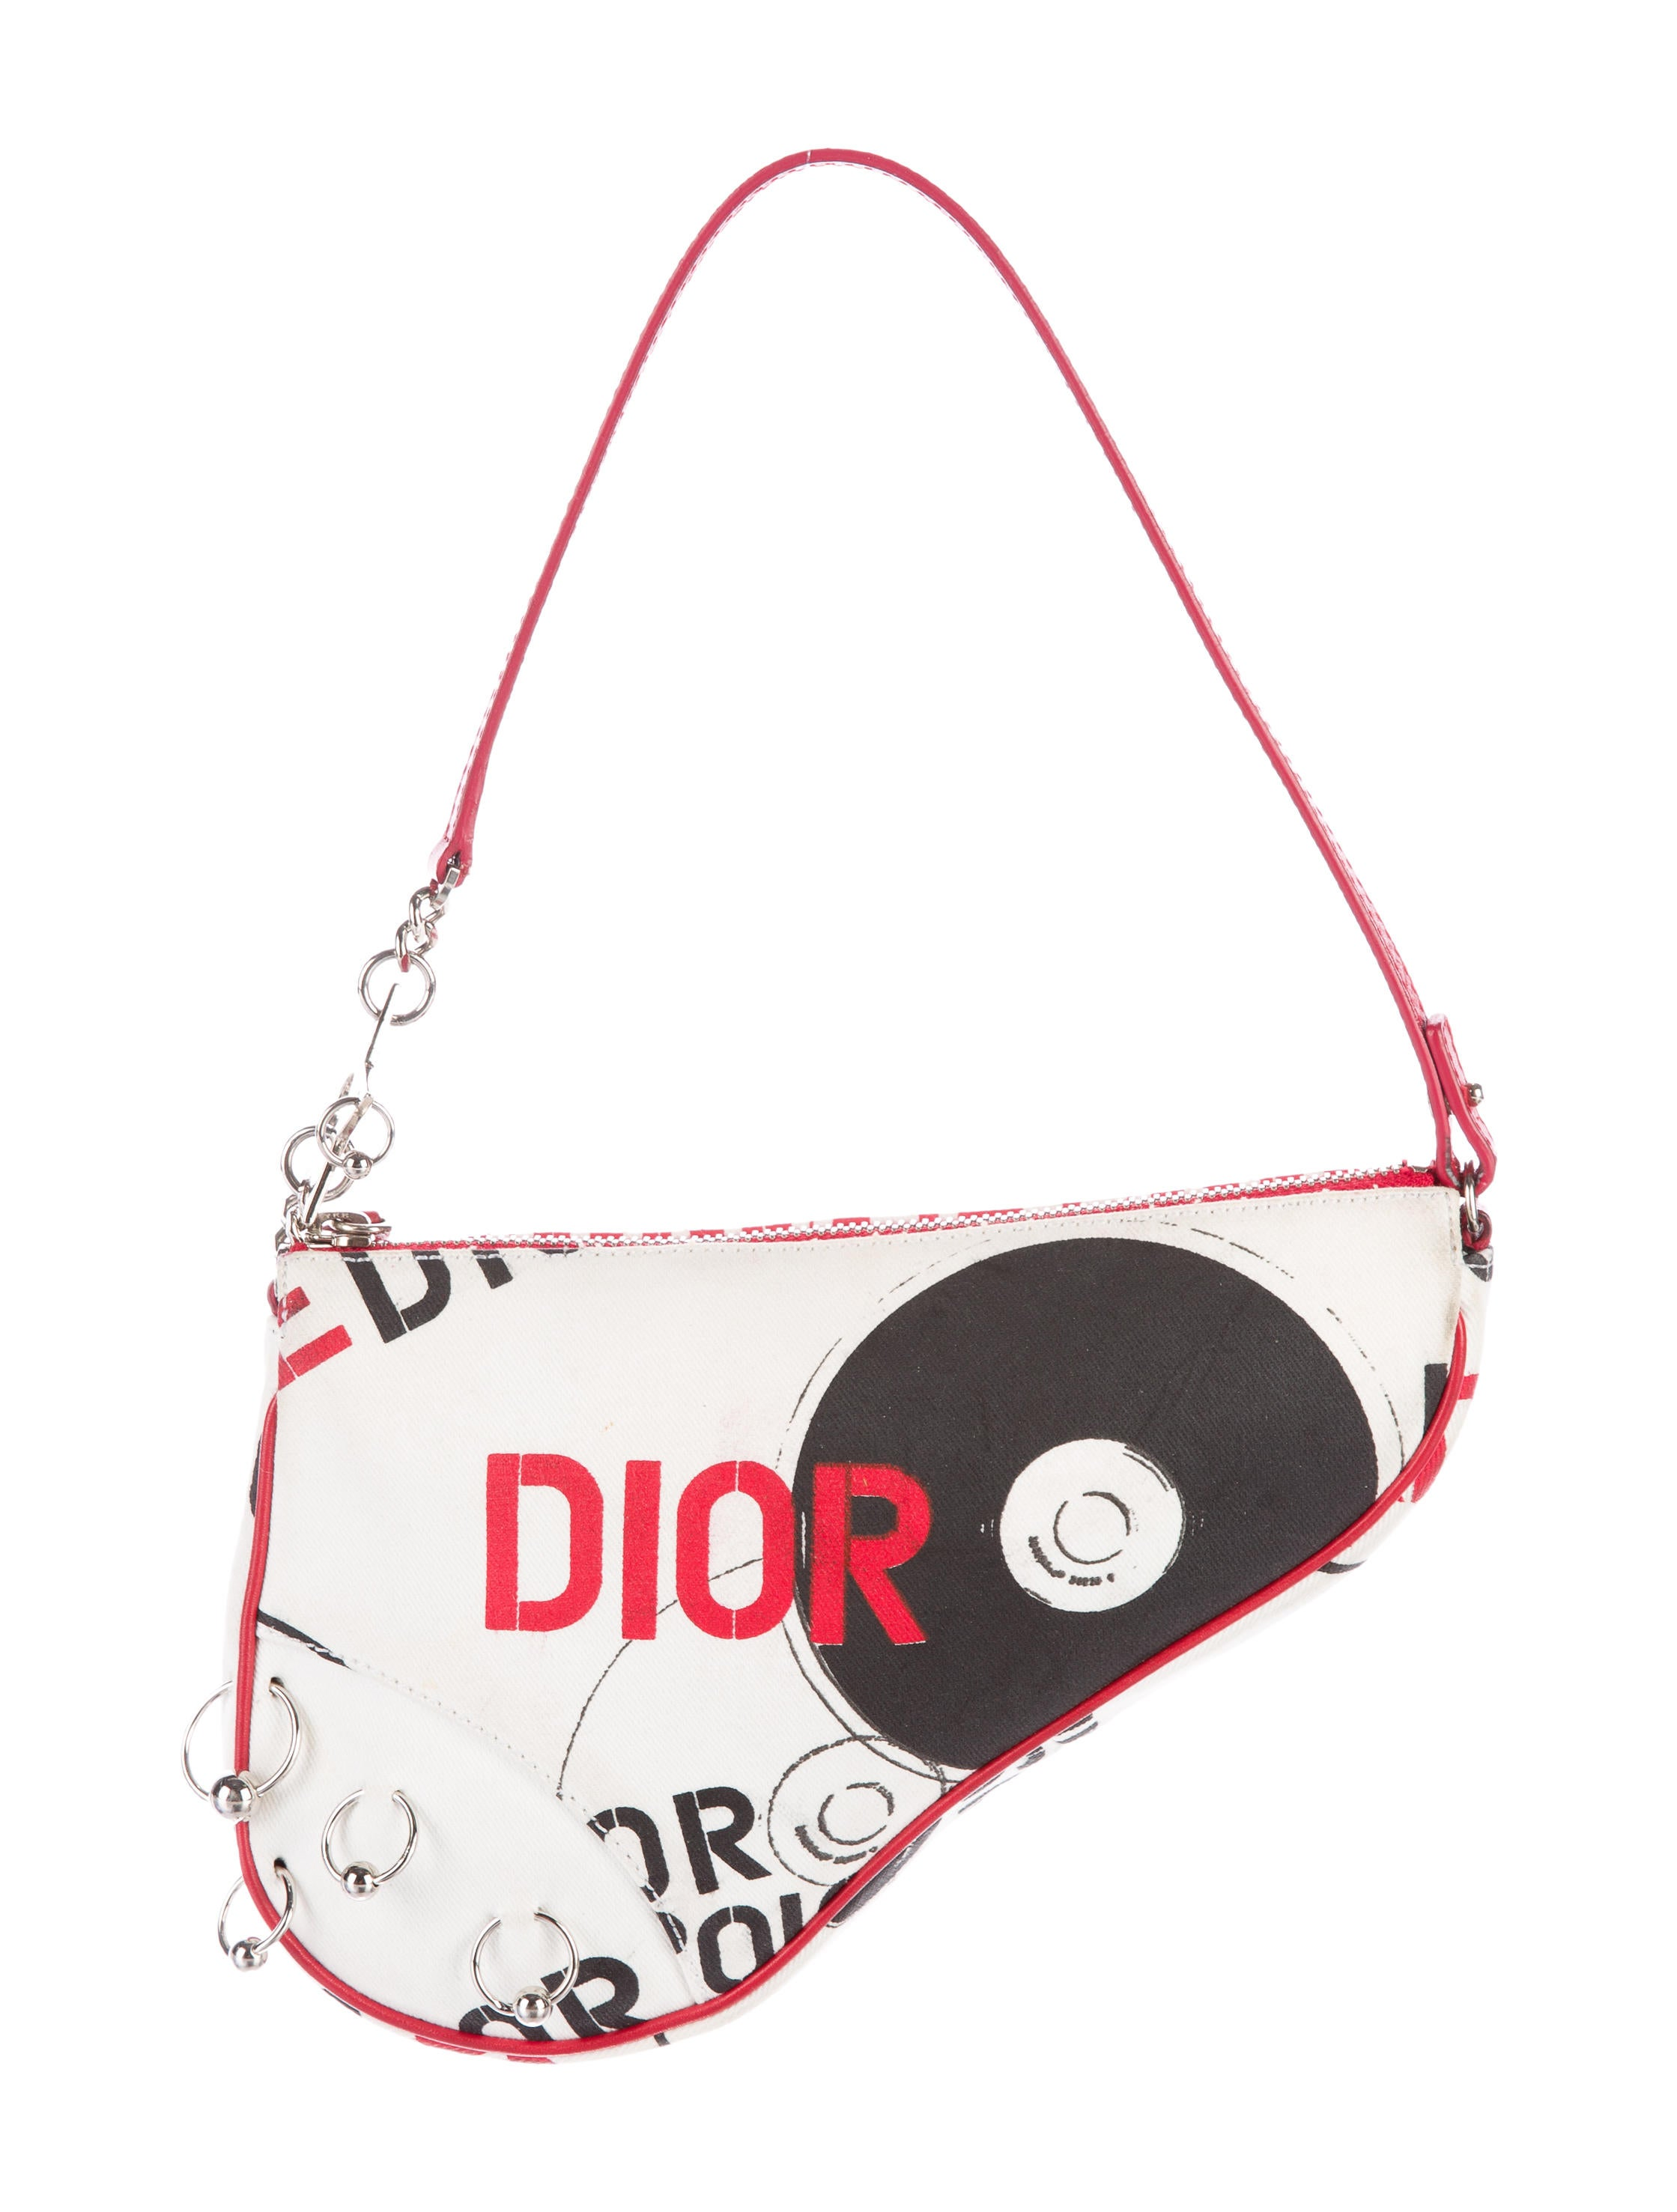 65f517de4097 Christian Dior Hardcore Mini Saddle Bag - Handbags - CHR50418